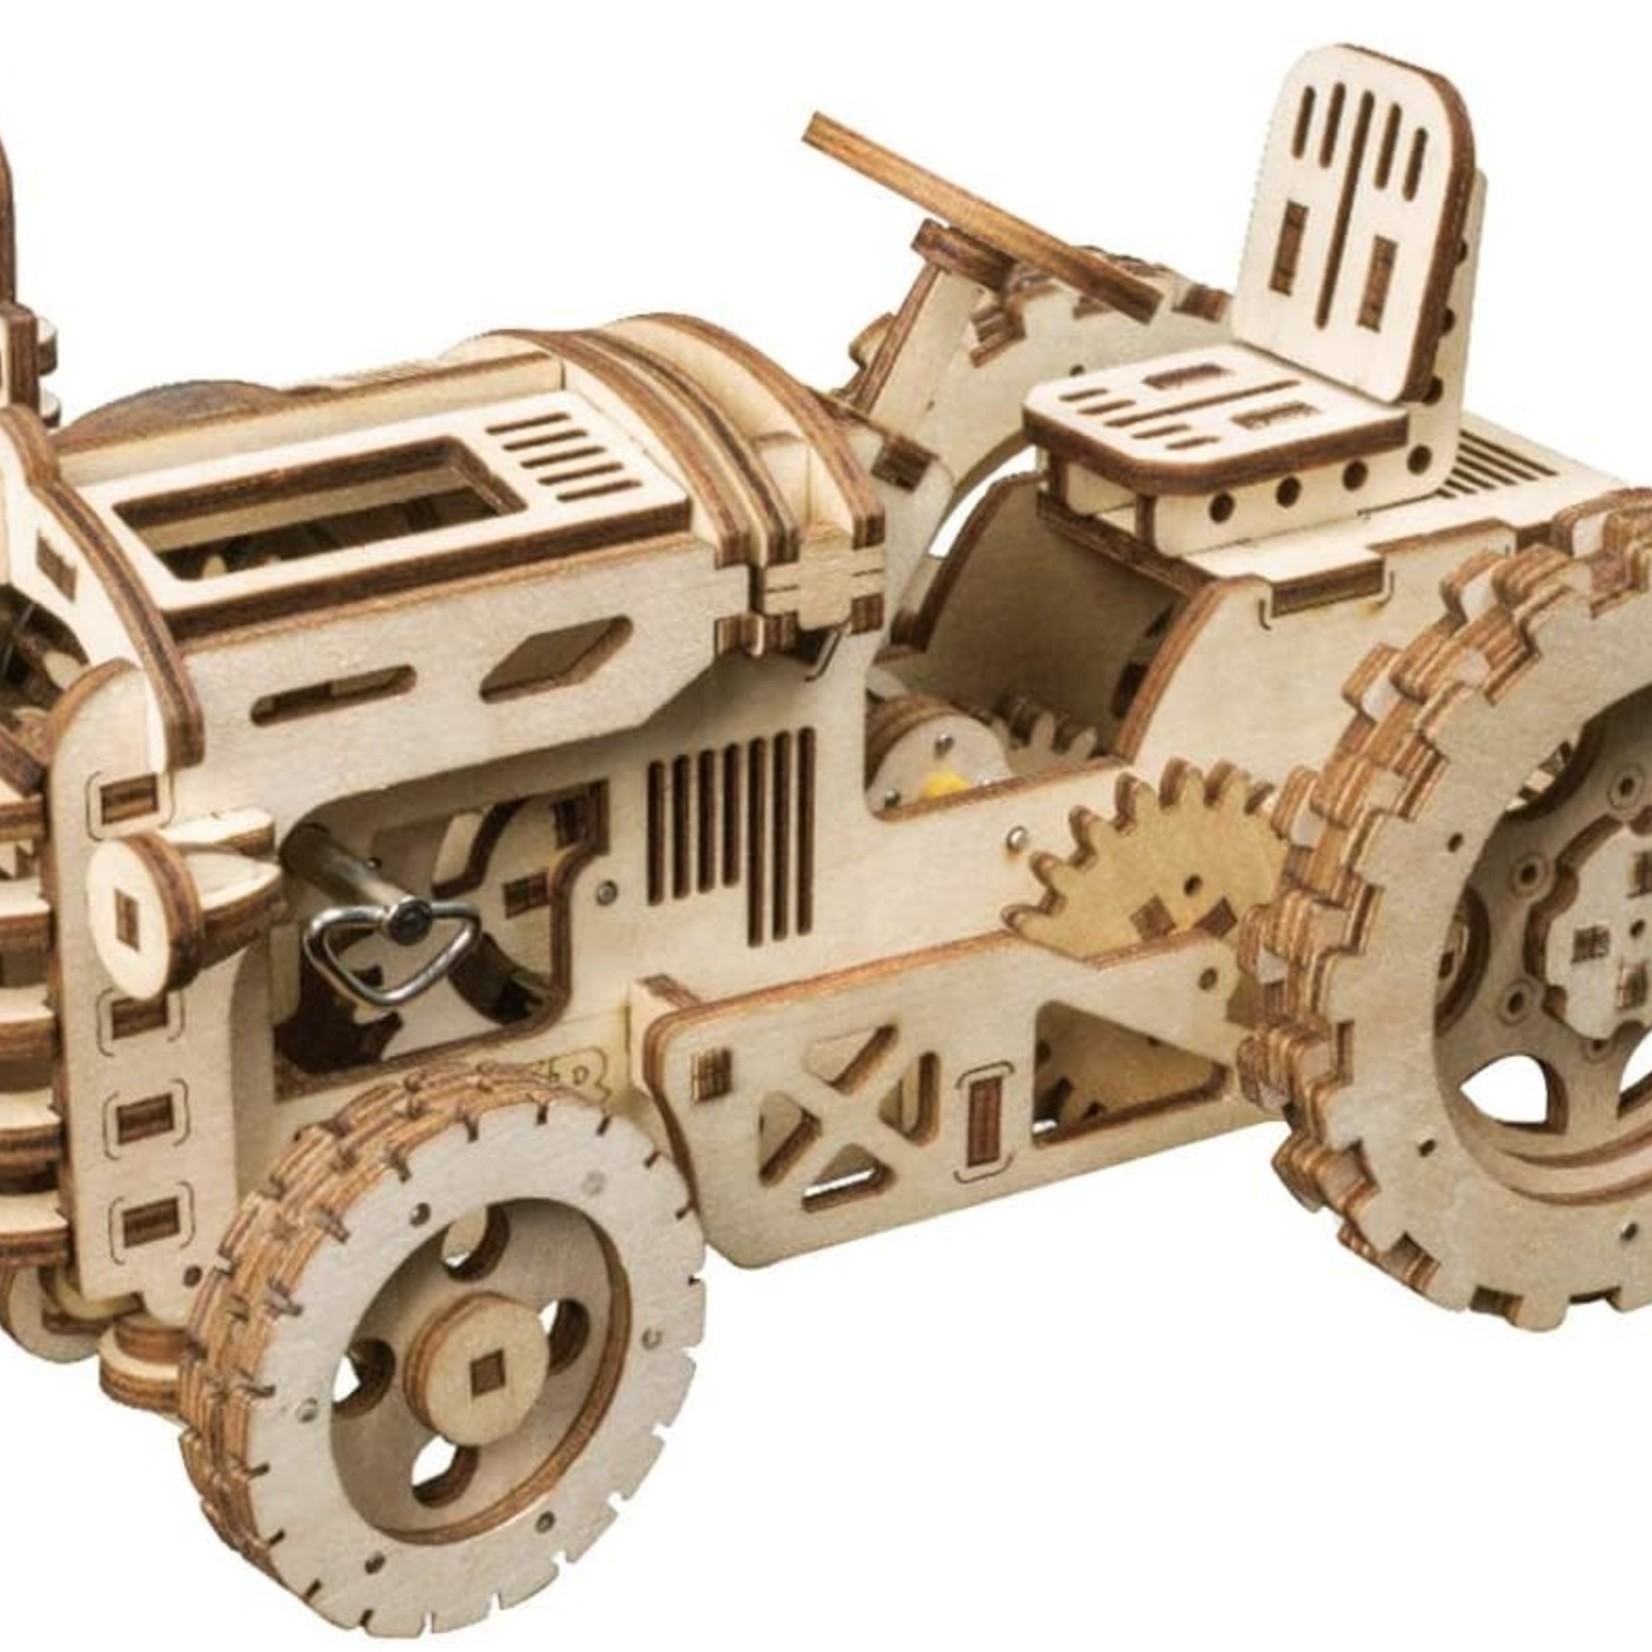 Rokr Mechanical Model 3D Wooden Puzzle -Tractor